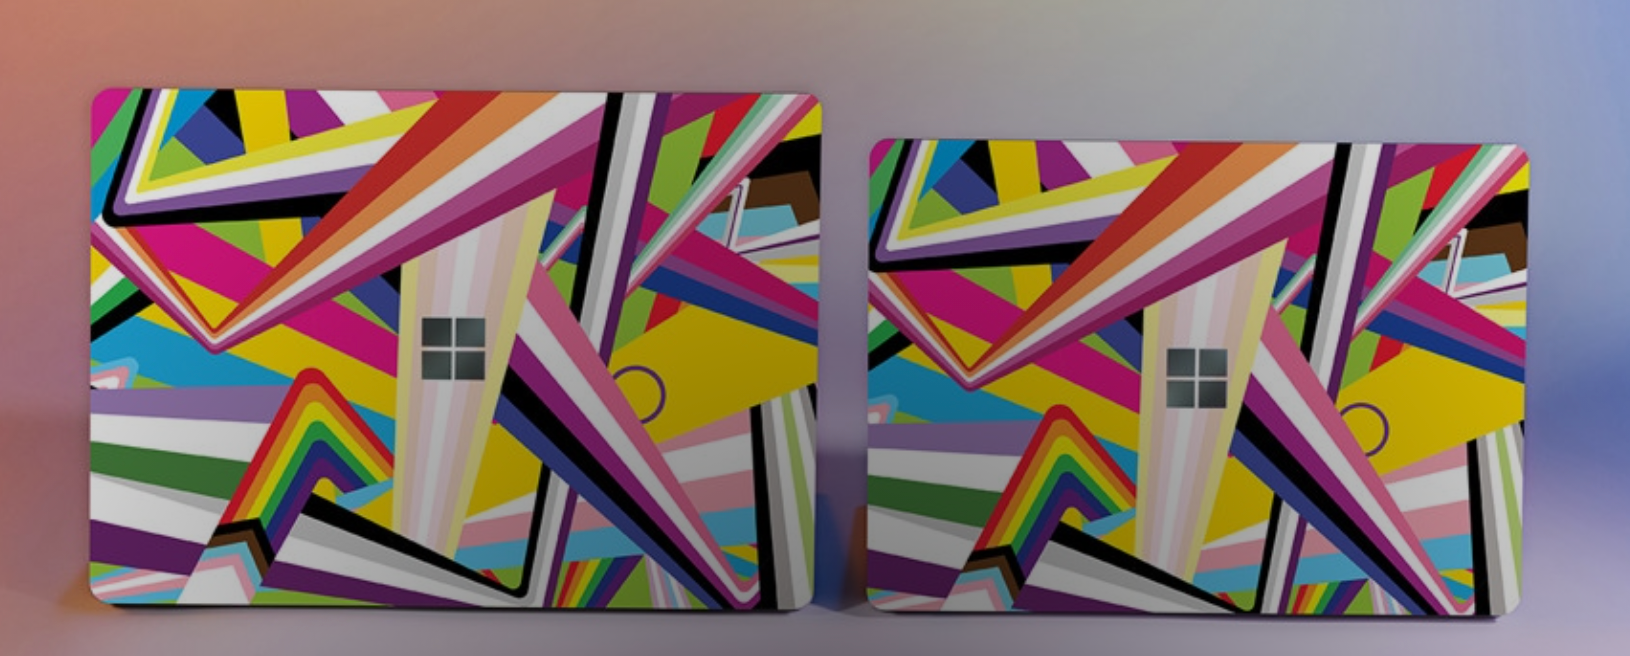 the two sized microsoft laptops with colorful designs on them